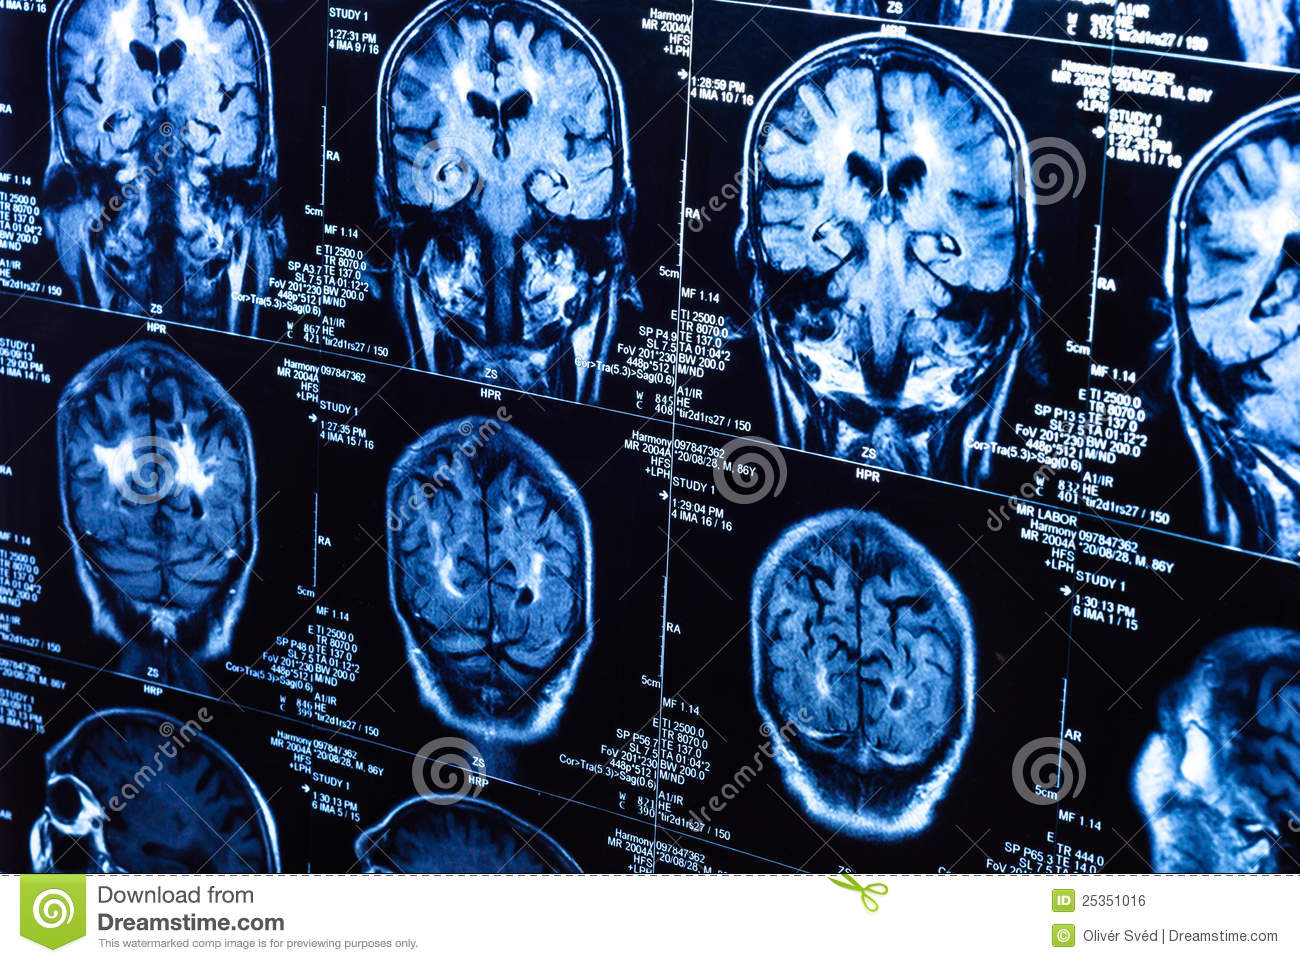 A group of CAT scans of the human brain